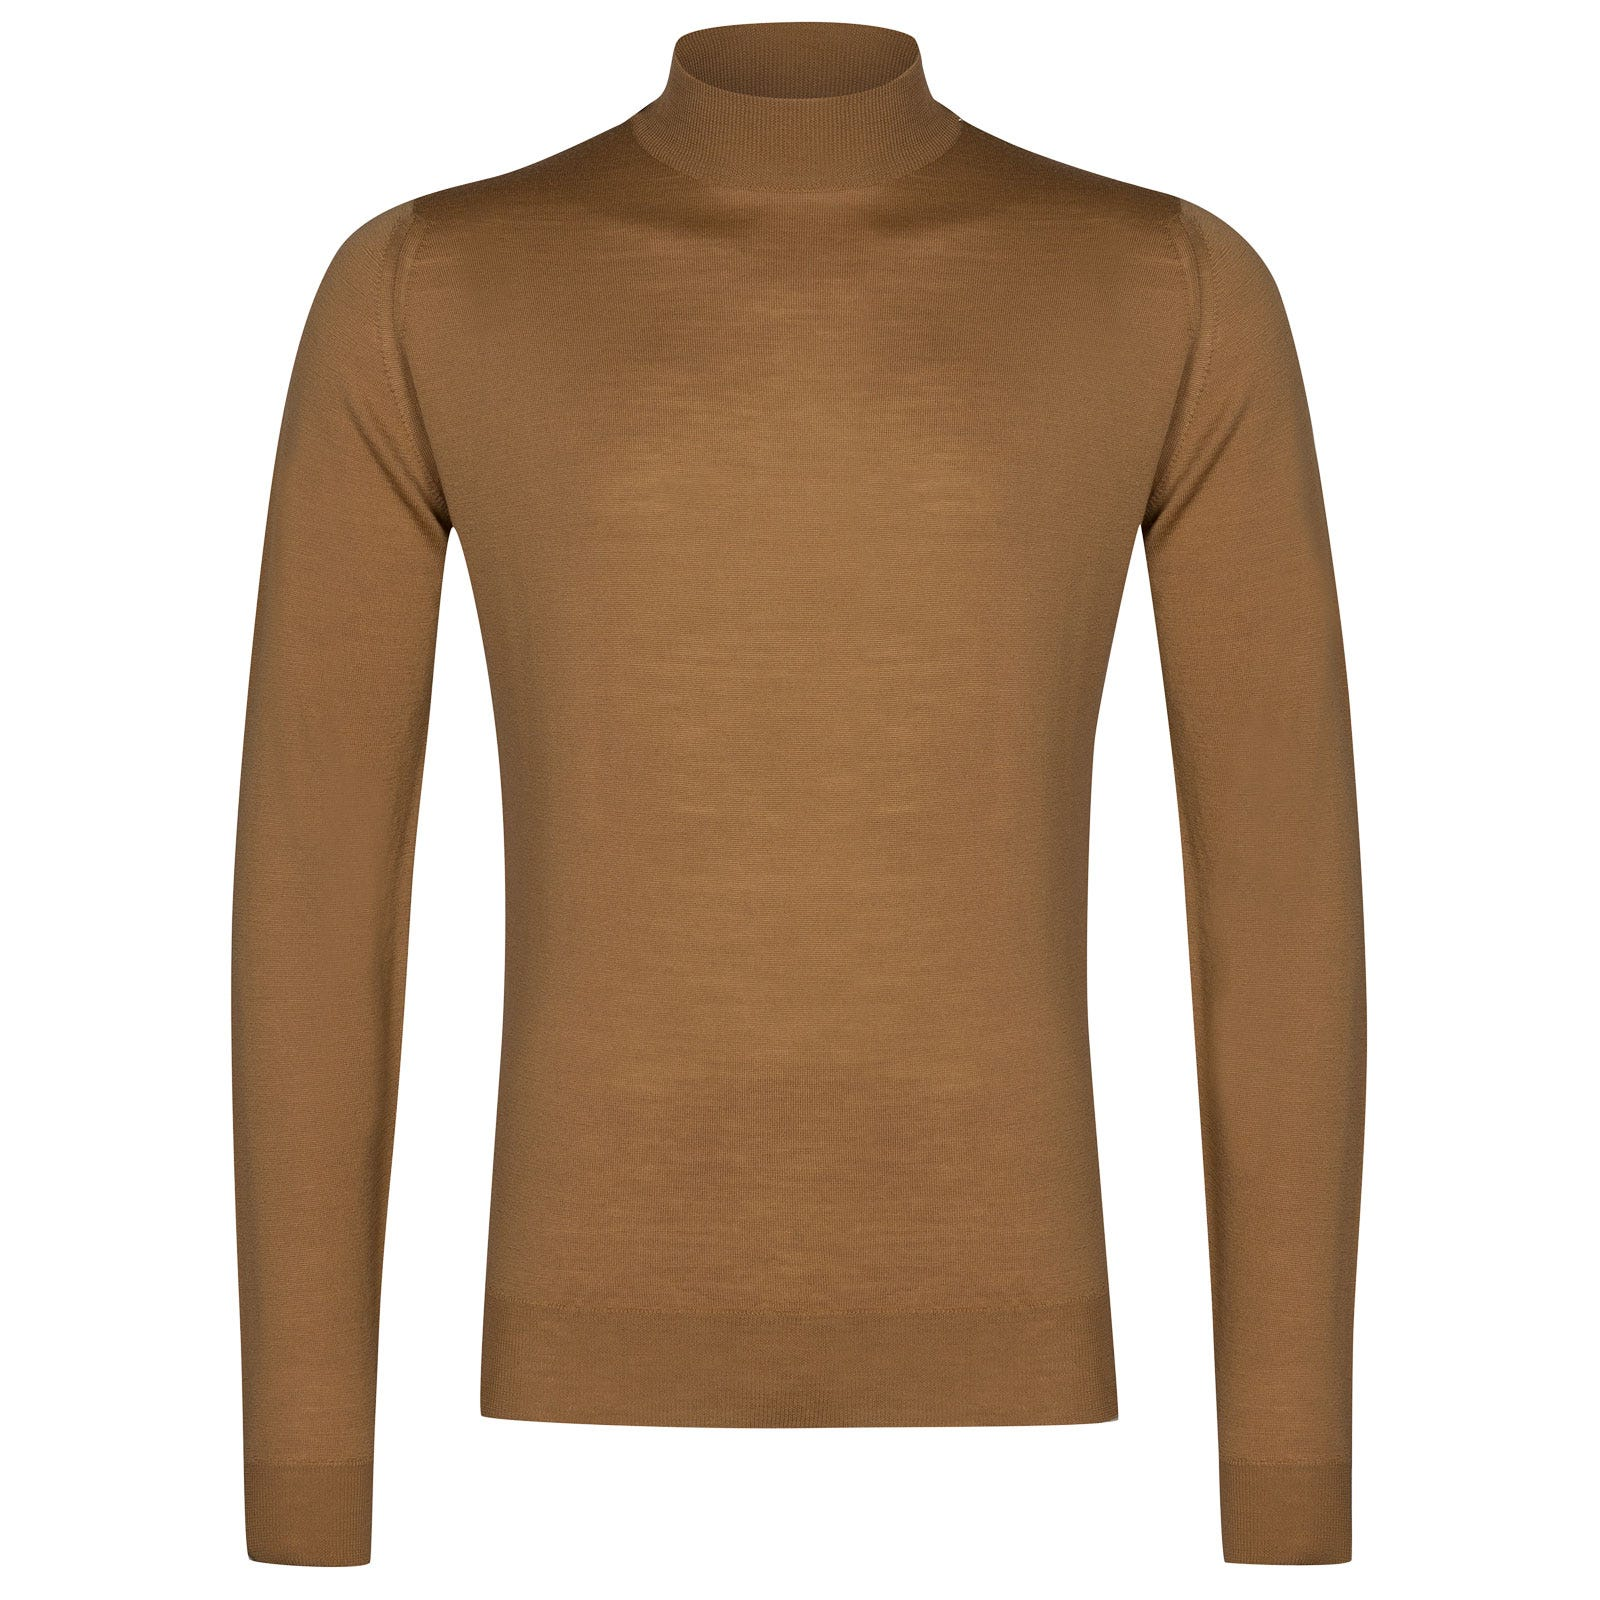 John Smedley harcourt Merino Wool Pullover in Camel-M